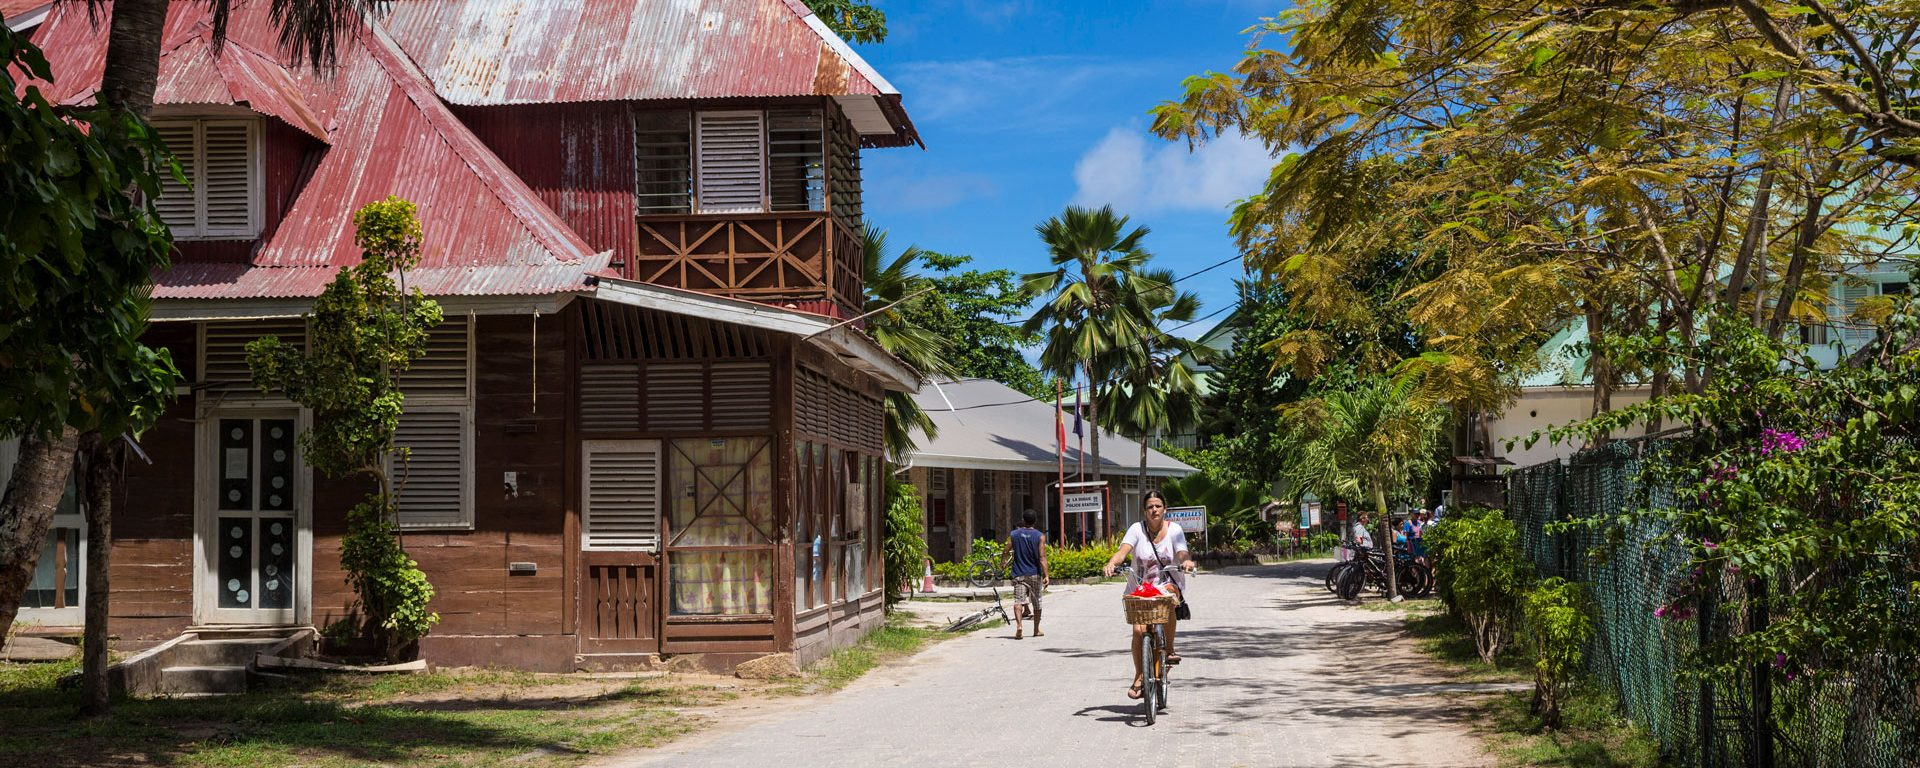 Woman rides bicycle in La Passe on La Digue Island, Seychelles